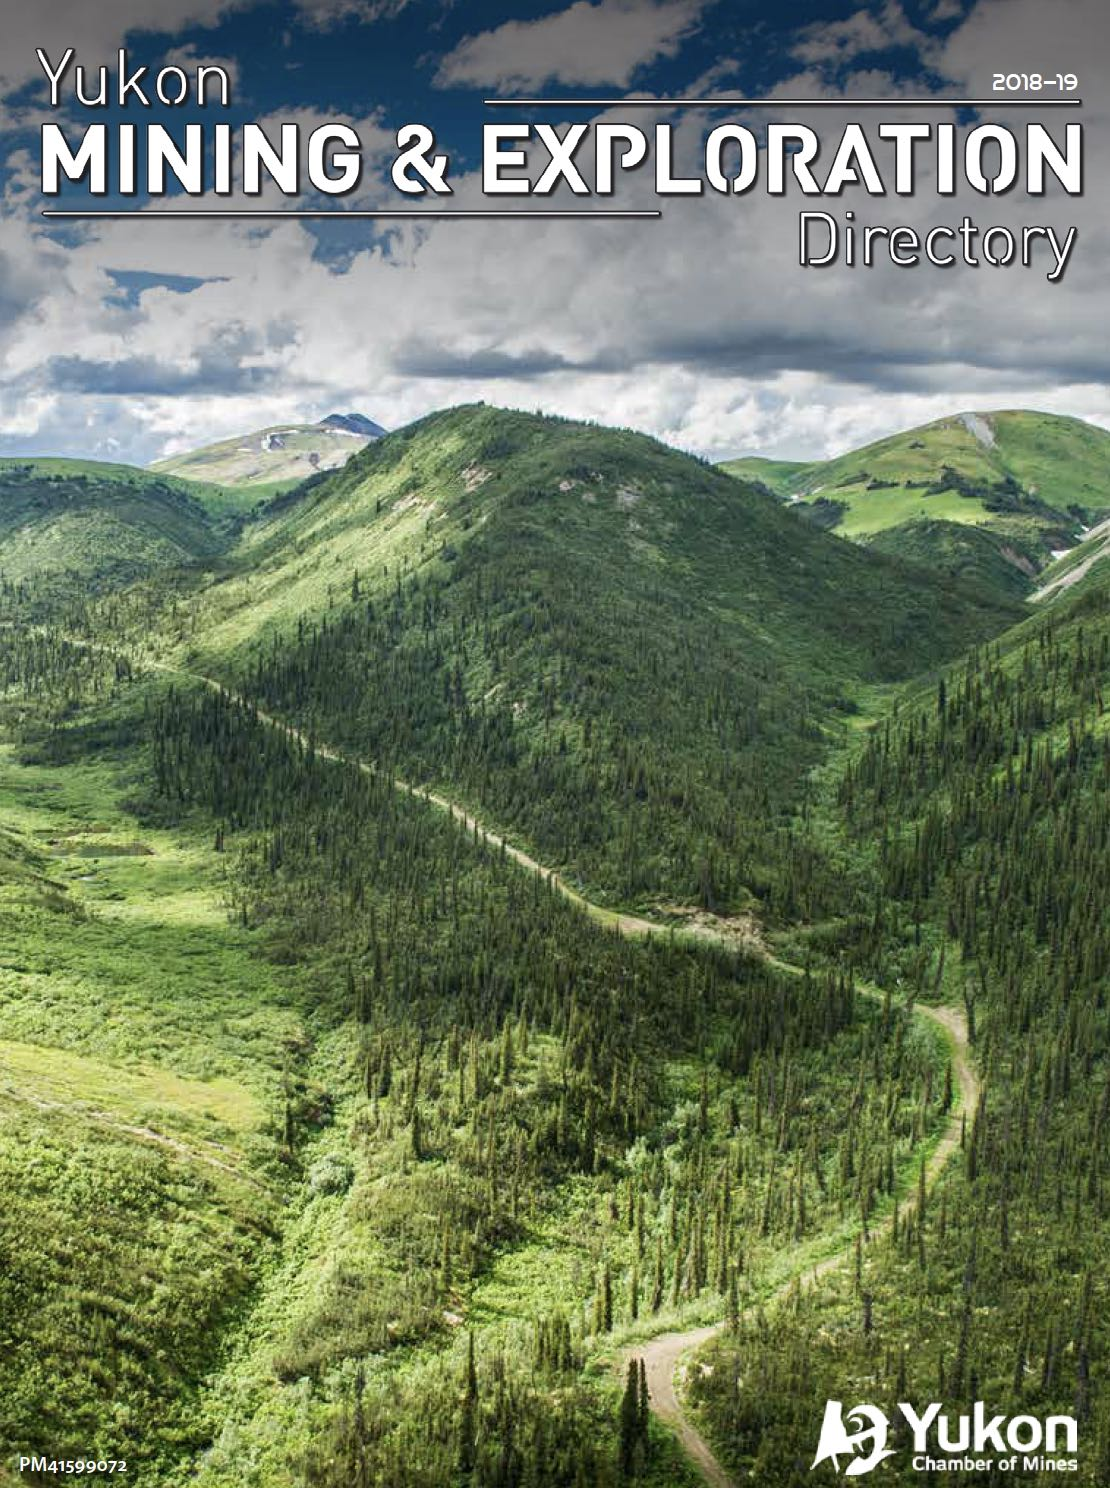 Yukon Mining and Exploration Directory 2018-2019